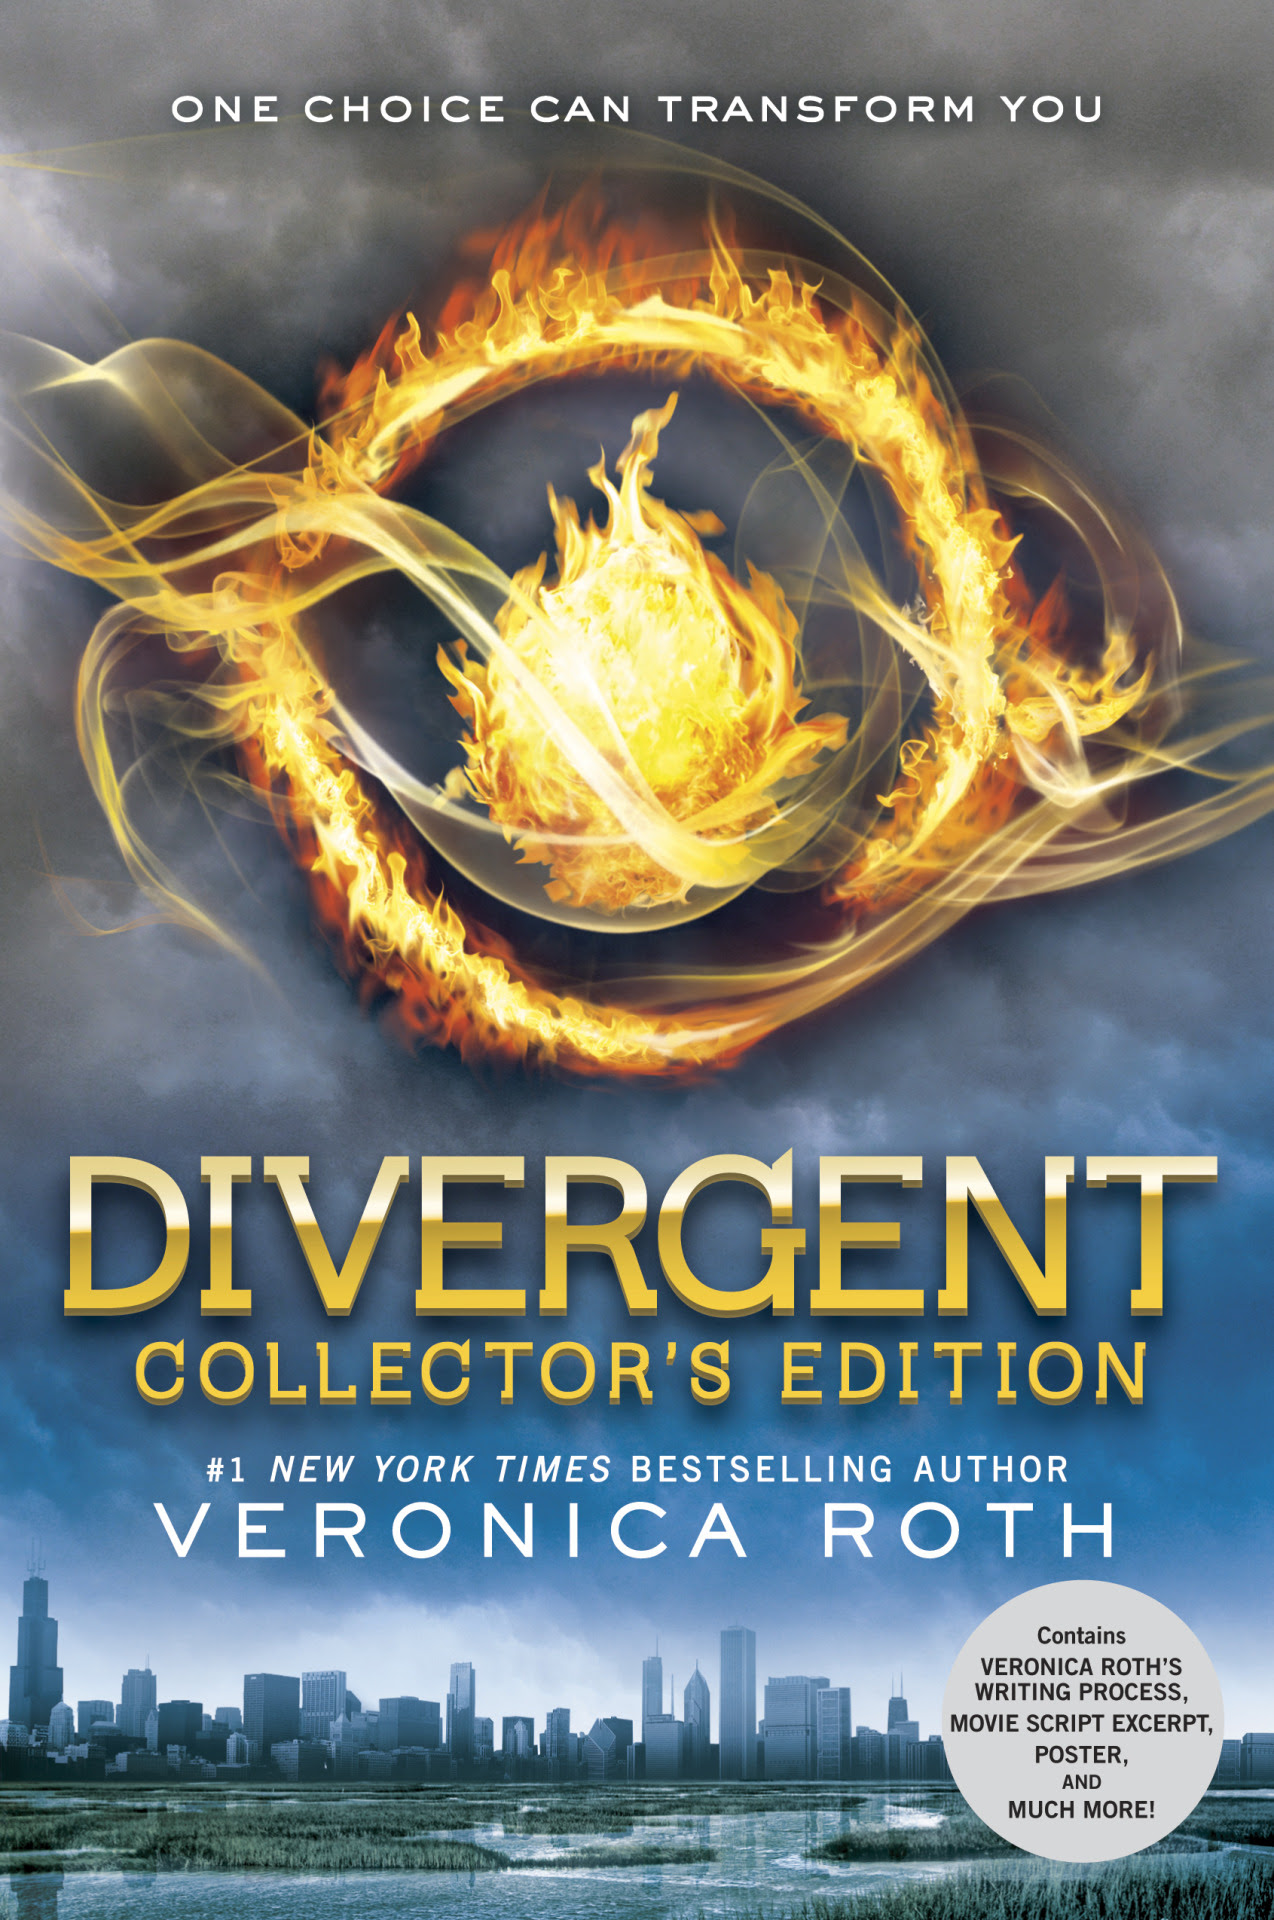 "Initiates! The Divergent Collector's Edition will be available October 21st! And we cannot contain our excitement! About the Divergent Collector's Edition:  The #1 New York Times bestseller that started a worldwide phenomenon and inspired a major motion picture is now available in a beautifully designed Collector's Edition. This deluxe package features: 72 pages of bonus content including: Two essays by Veronica Roth, including excerpts from early drafts of Divergent  An essay about the psychology behind fear and the ""exposure therapy"" of Dauntless initiation Artistic renderings of the Choosing Ceremony Bowls An excerpt from the movie script Favorite quotes from Divergent, illustrated by fellow Initiates A map of the Dauntless compound Divergent discussion questions Plus: A four-color fold-out poster A brilliant metallic book jacket A satin ribbon placeholder This edition makes a great gift for established fans who want to expand their Divergent library or who already own the Insurgent Collector's Edition; readers new to the series who want a fuller reading experience; and fans of the feature film."